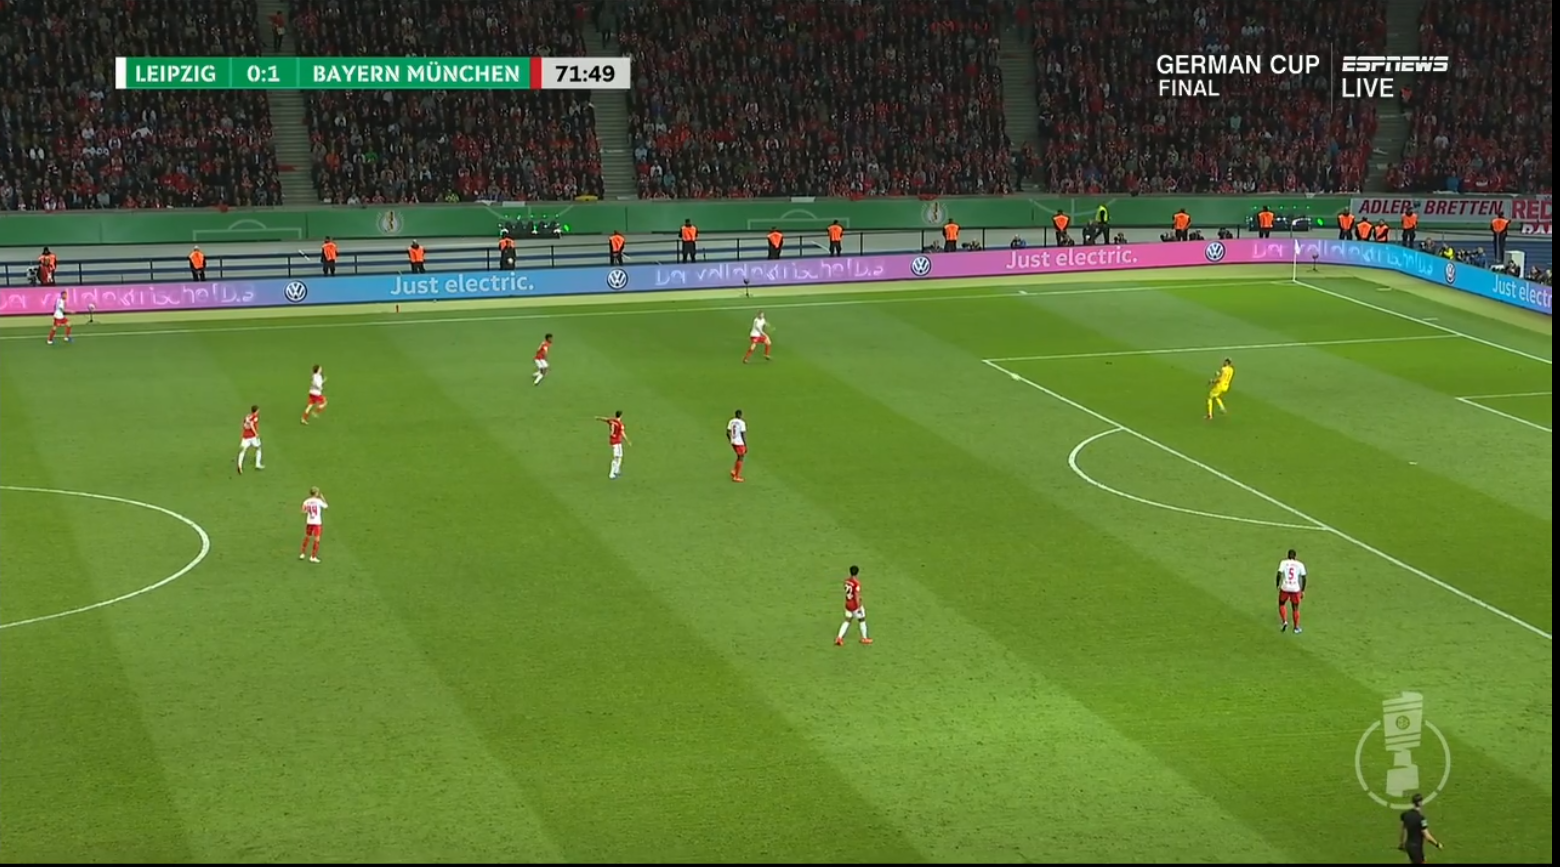 Bayern Leipzig DFB Pokal Tactical Analysis